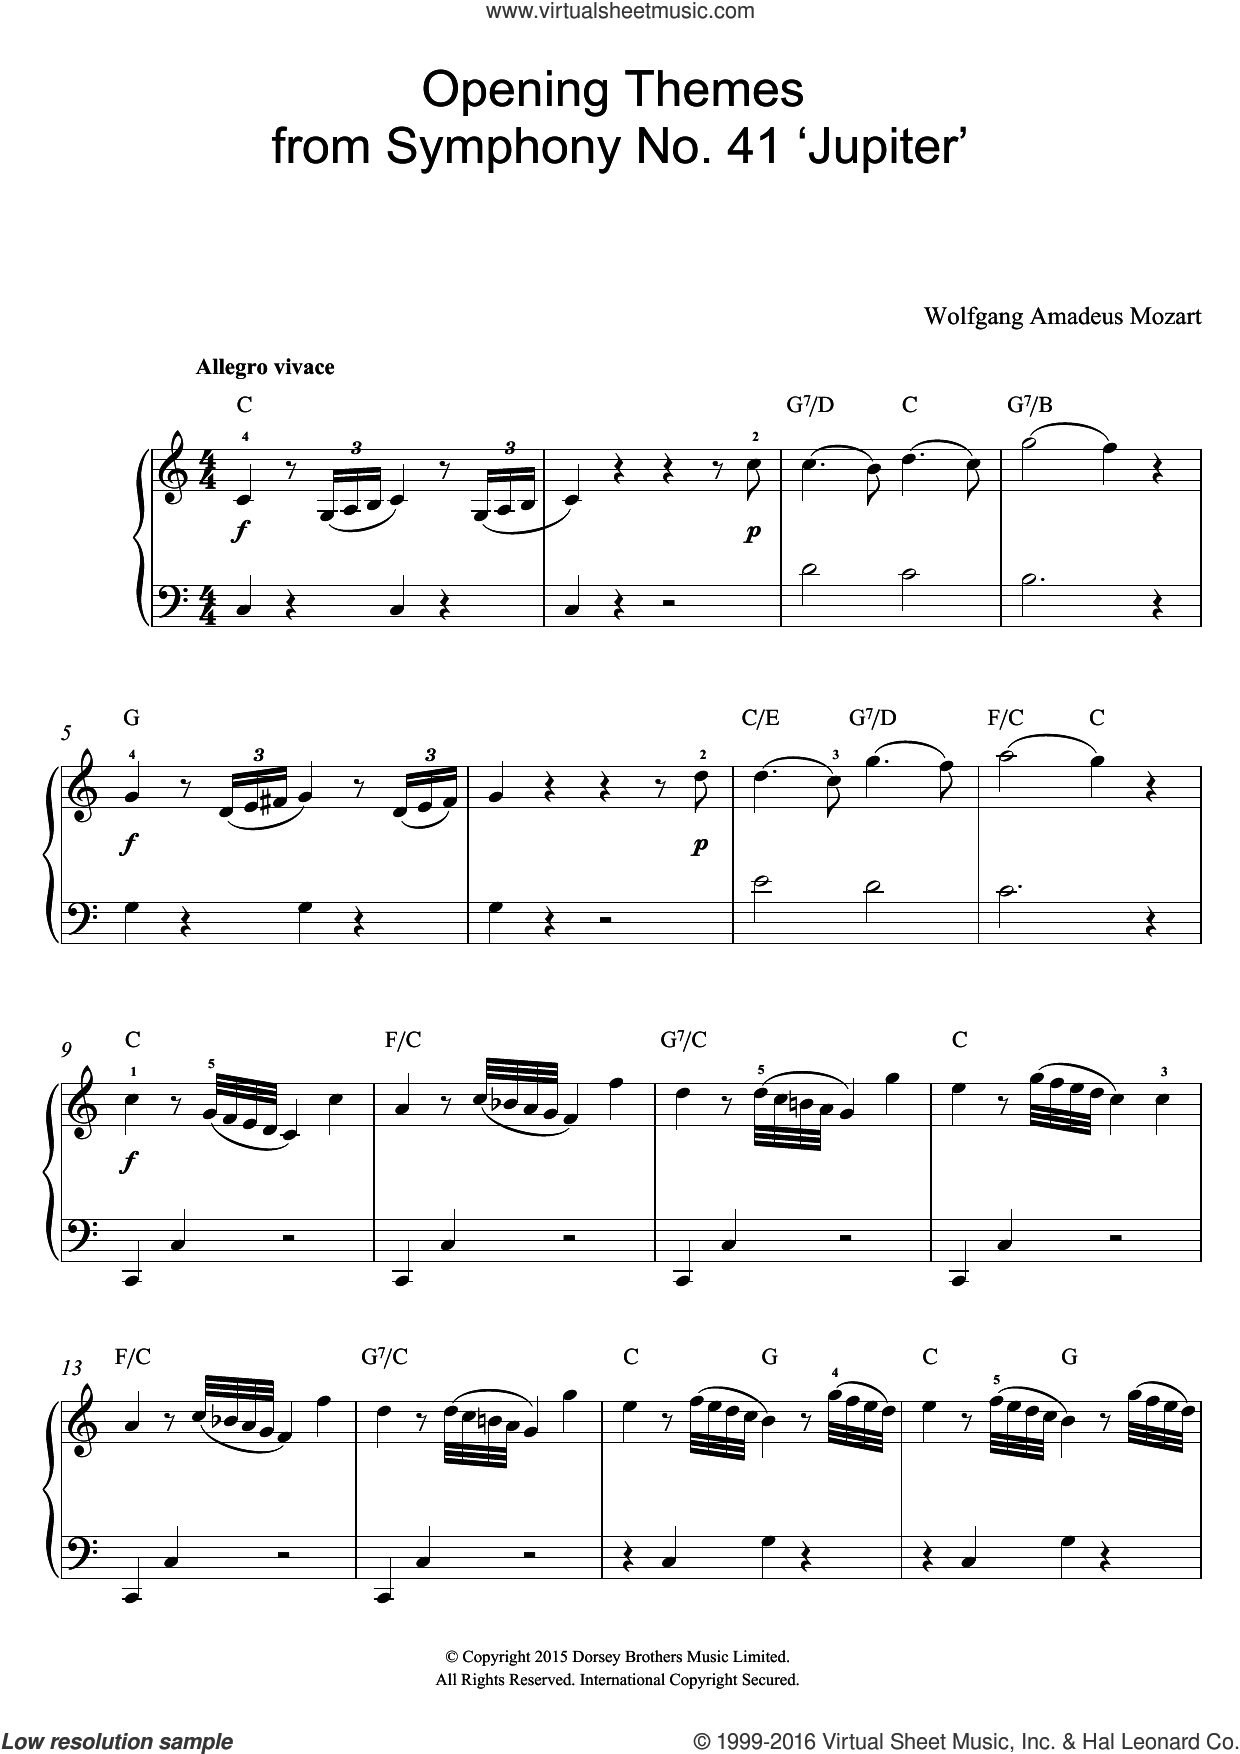 Opening Themes from Symphony No. 41 'Jupiter' sheet music for voice, piano or guitar by Wolfgang Amadeus Mozart. Score Image Preview.